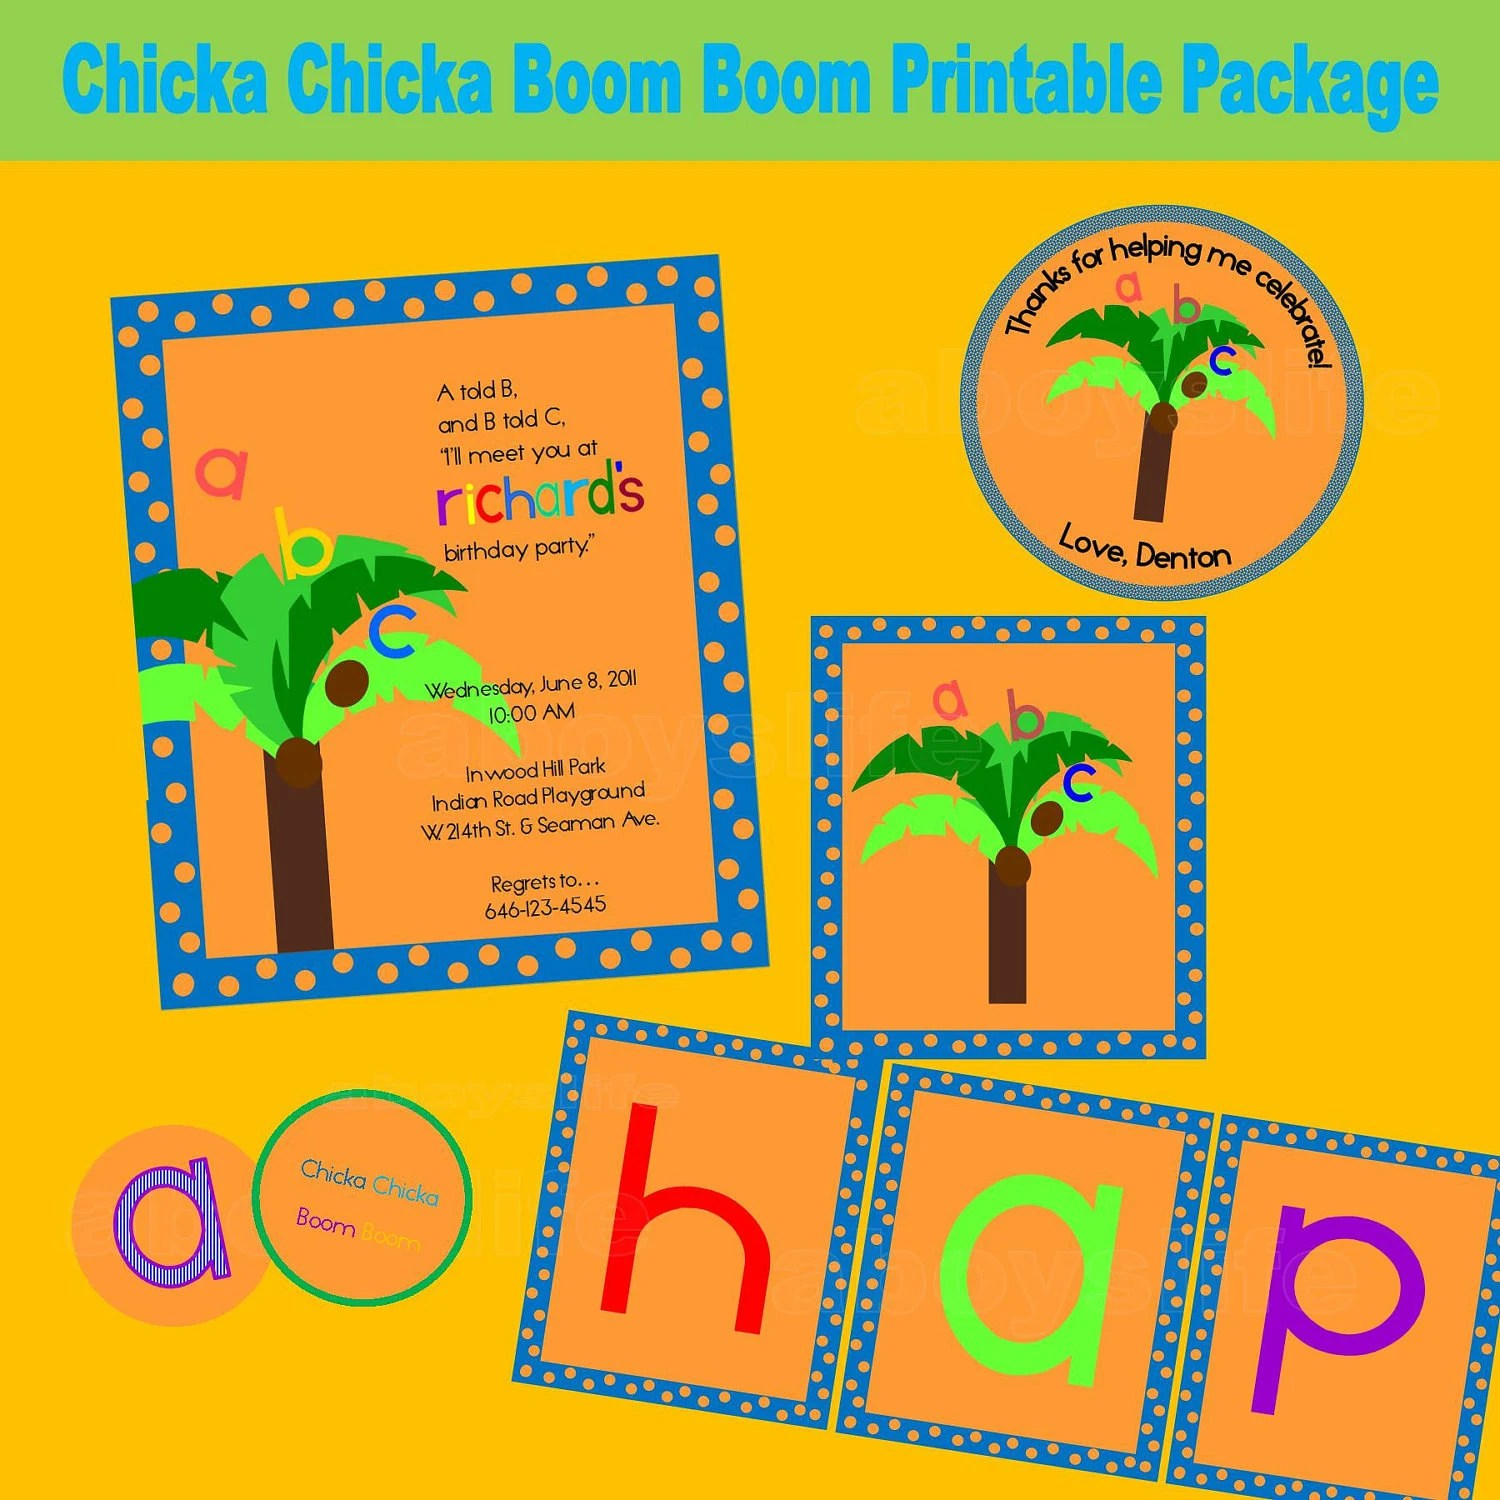 Chicka Chicka Boom Boom Boy S Printable Party Package